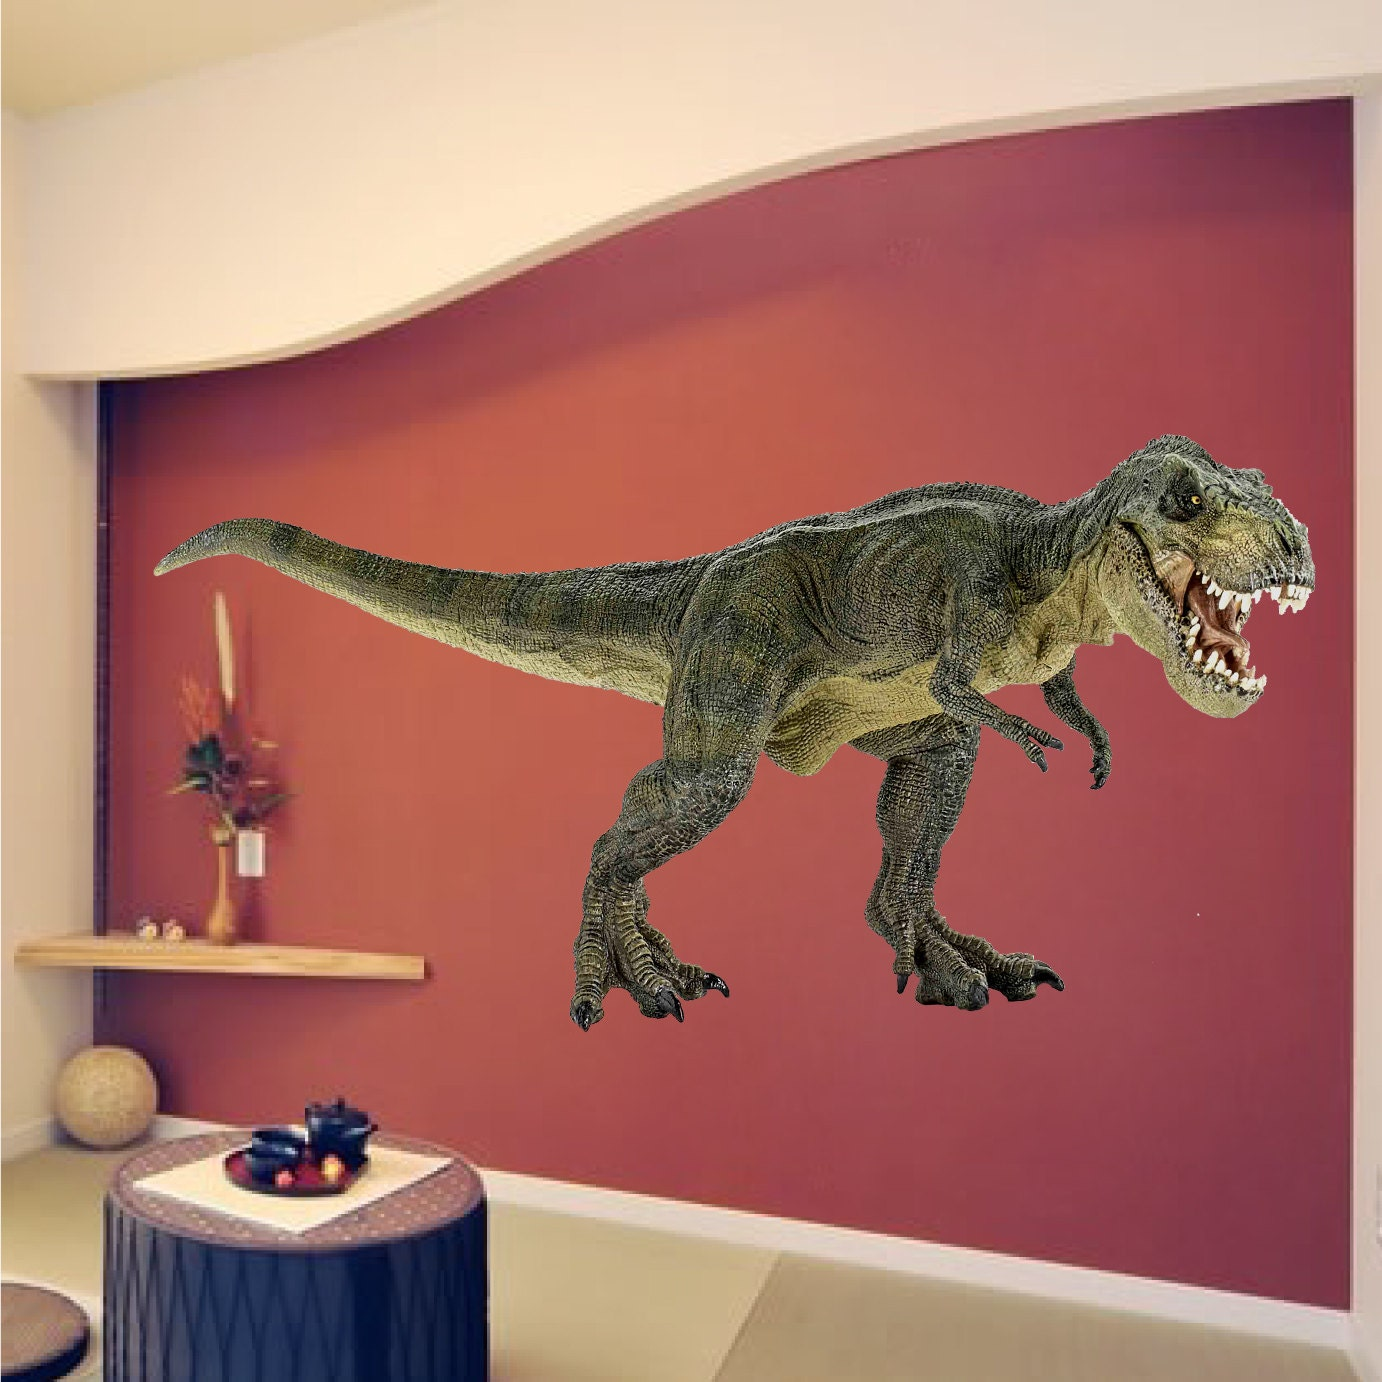 Dinosaur wall decal dinosaur wall mural kids jurassic wall for Dinosaur mural ideas